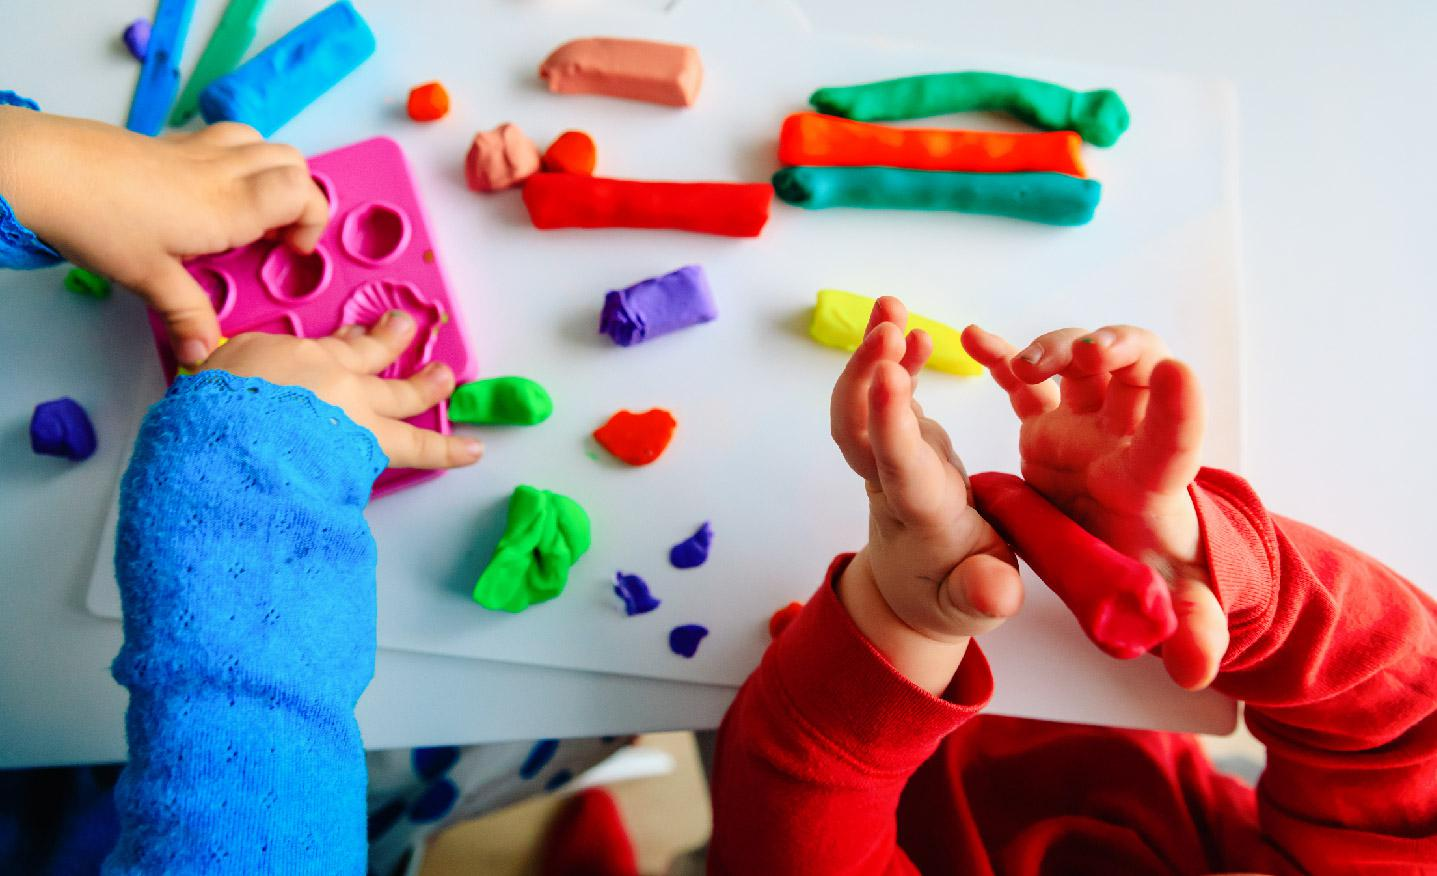 Clay Modelling For Kids. Here Are The Many Benefits Of Playing With Clay